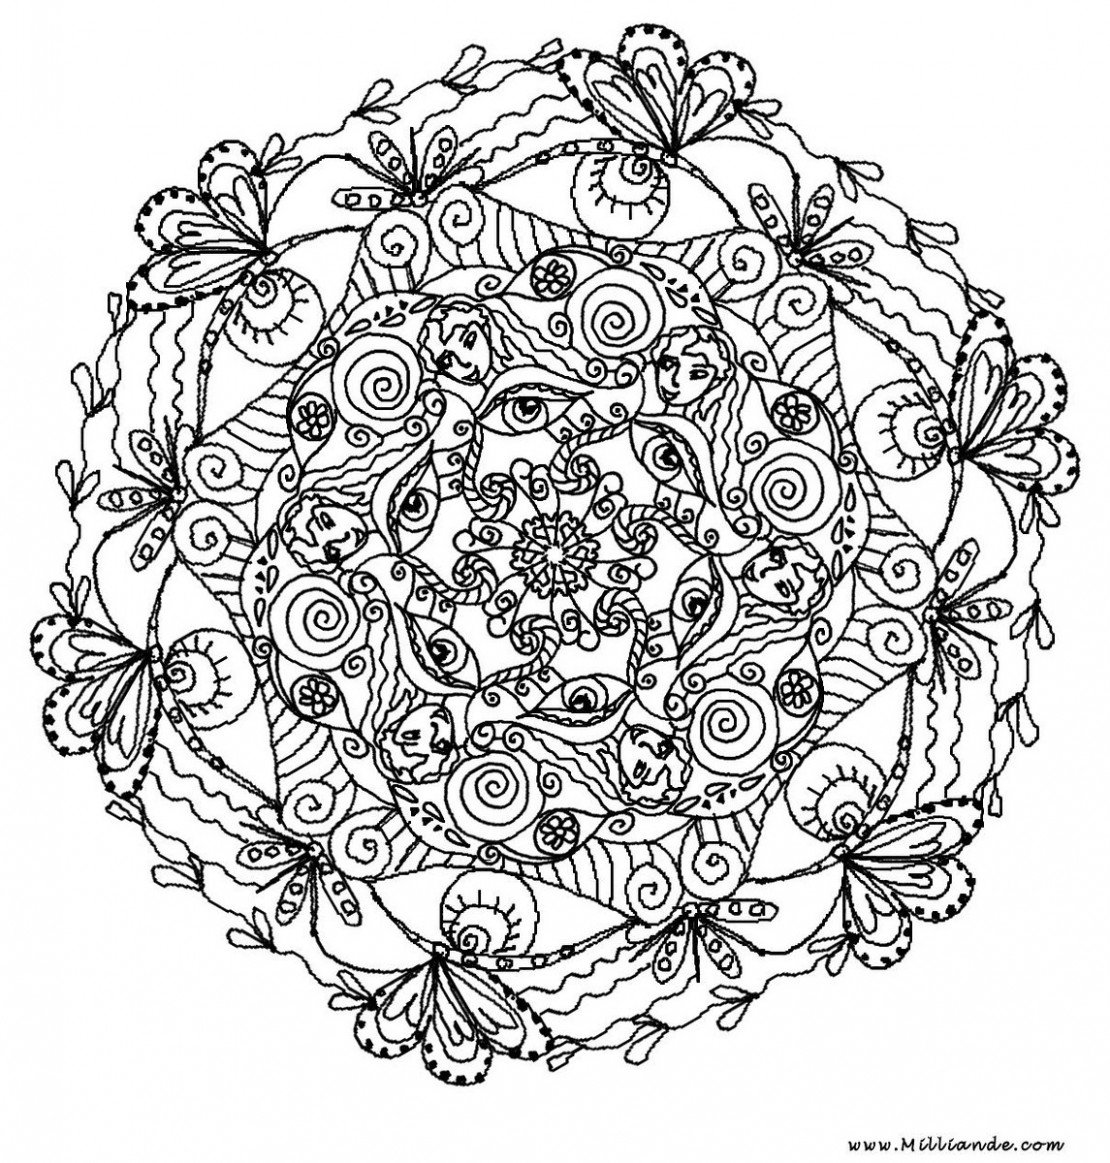 Coloring Pages for Adults   Large Images 1110x1163